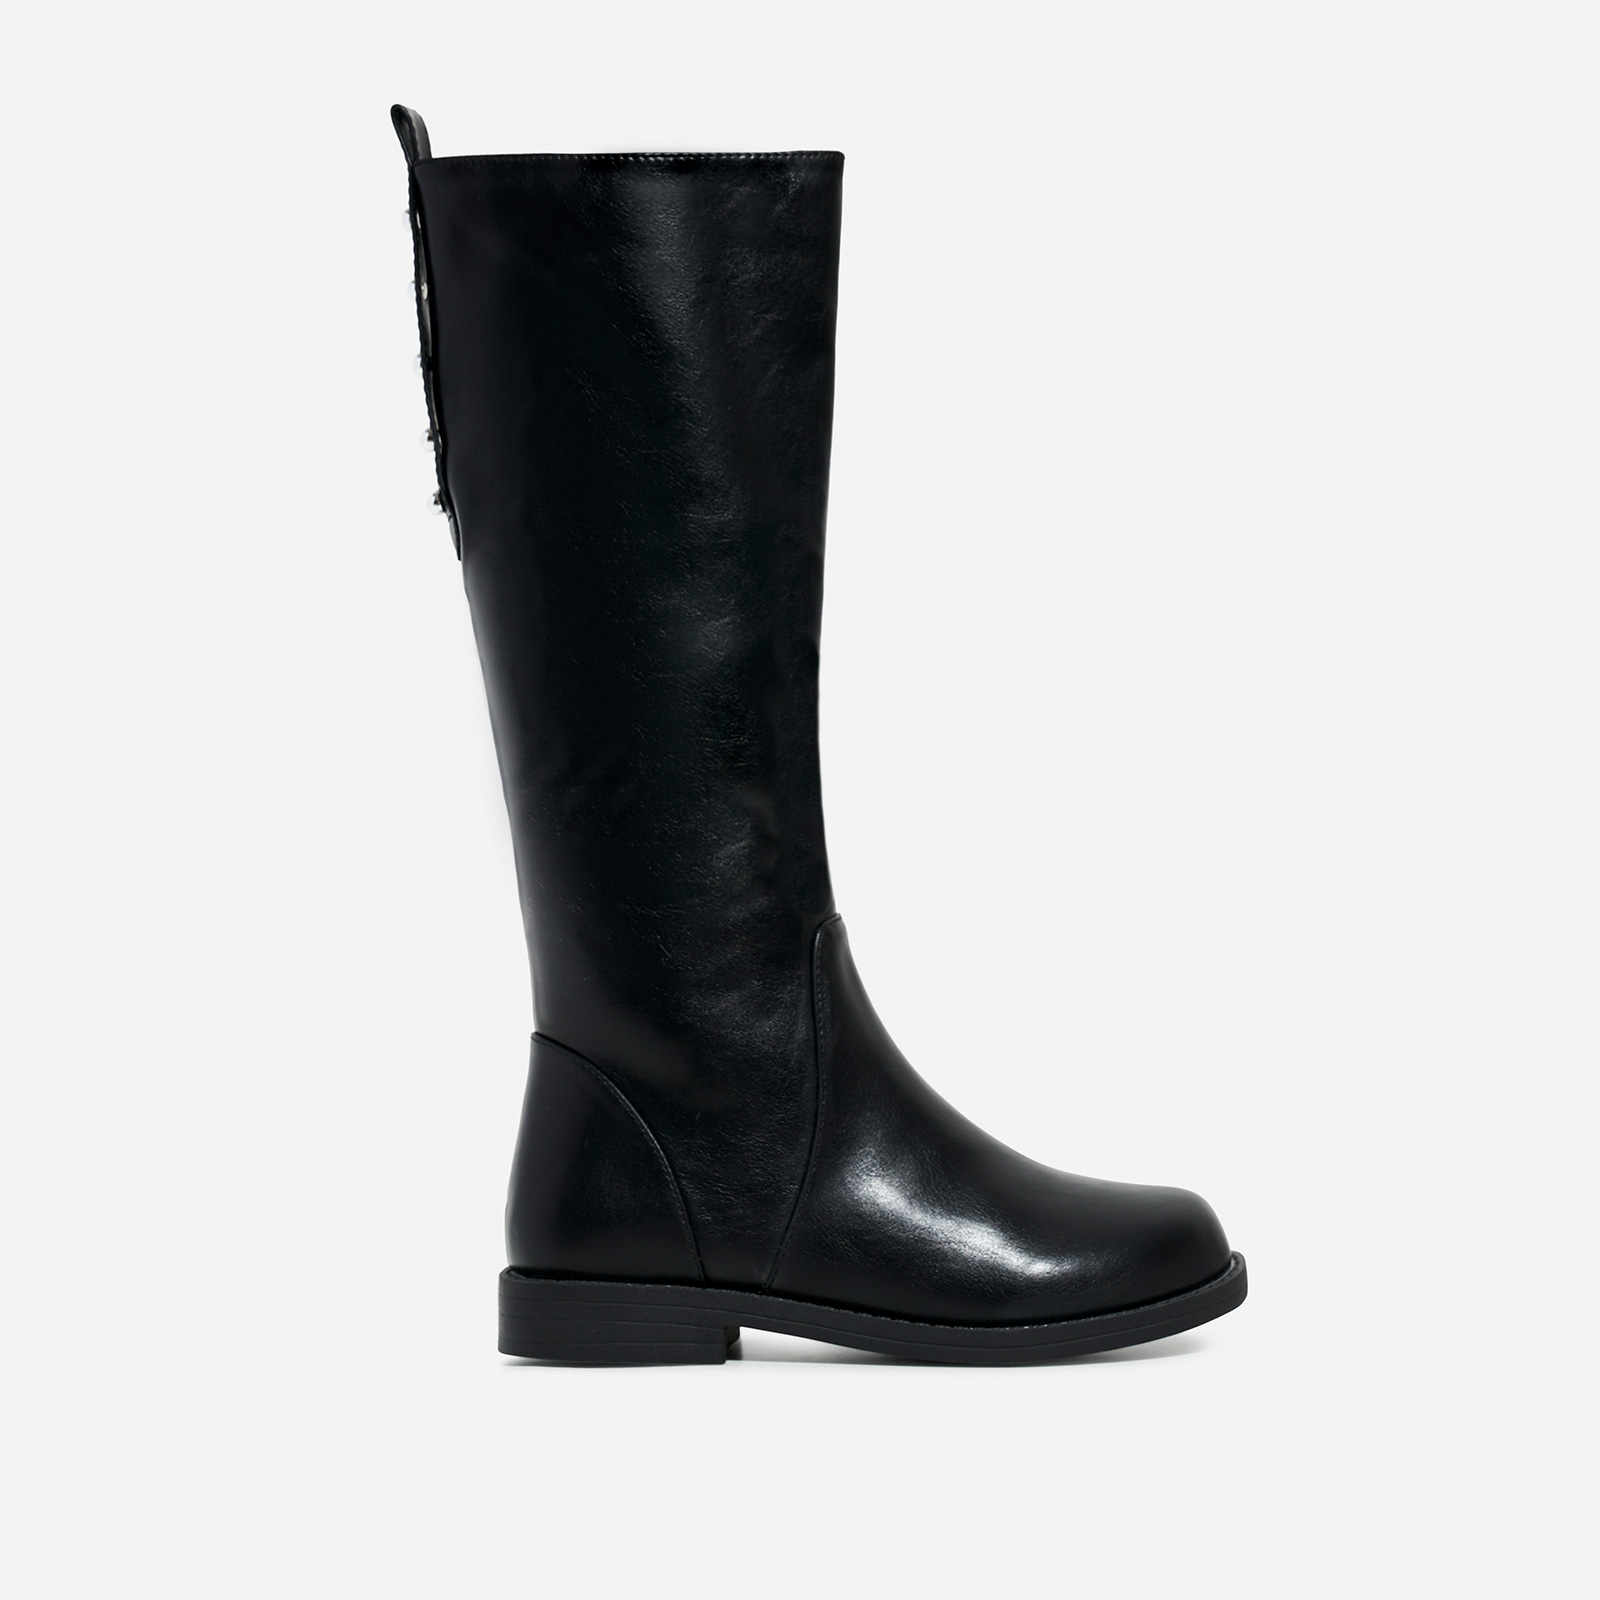 Sunshine Girl's Studded Detail Knee High Long Boot In Black Faux Leather